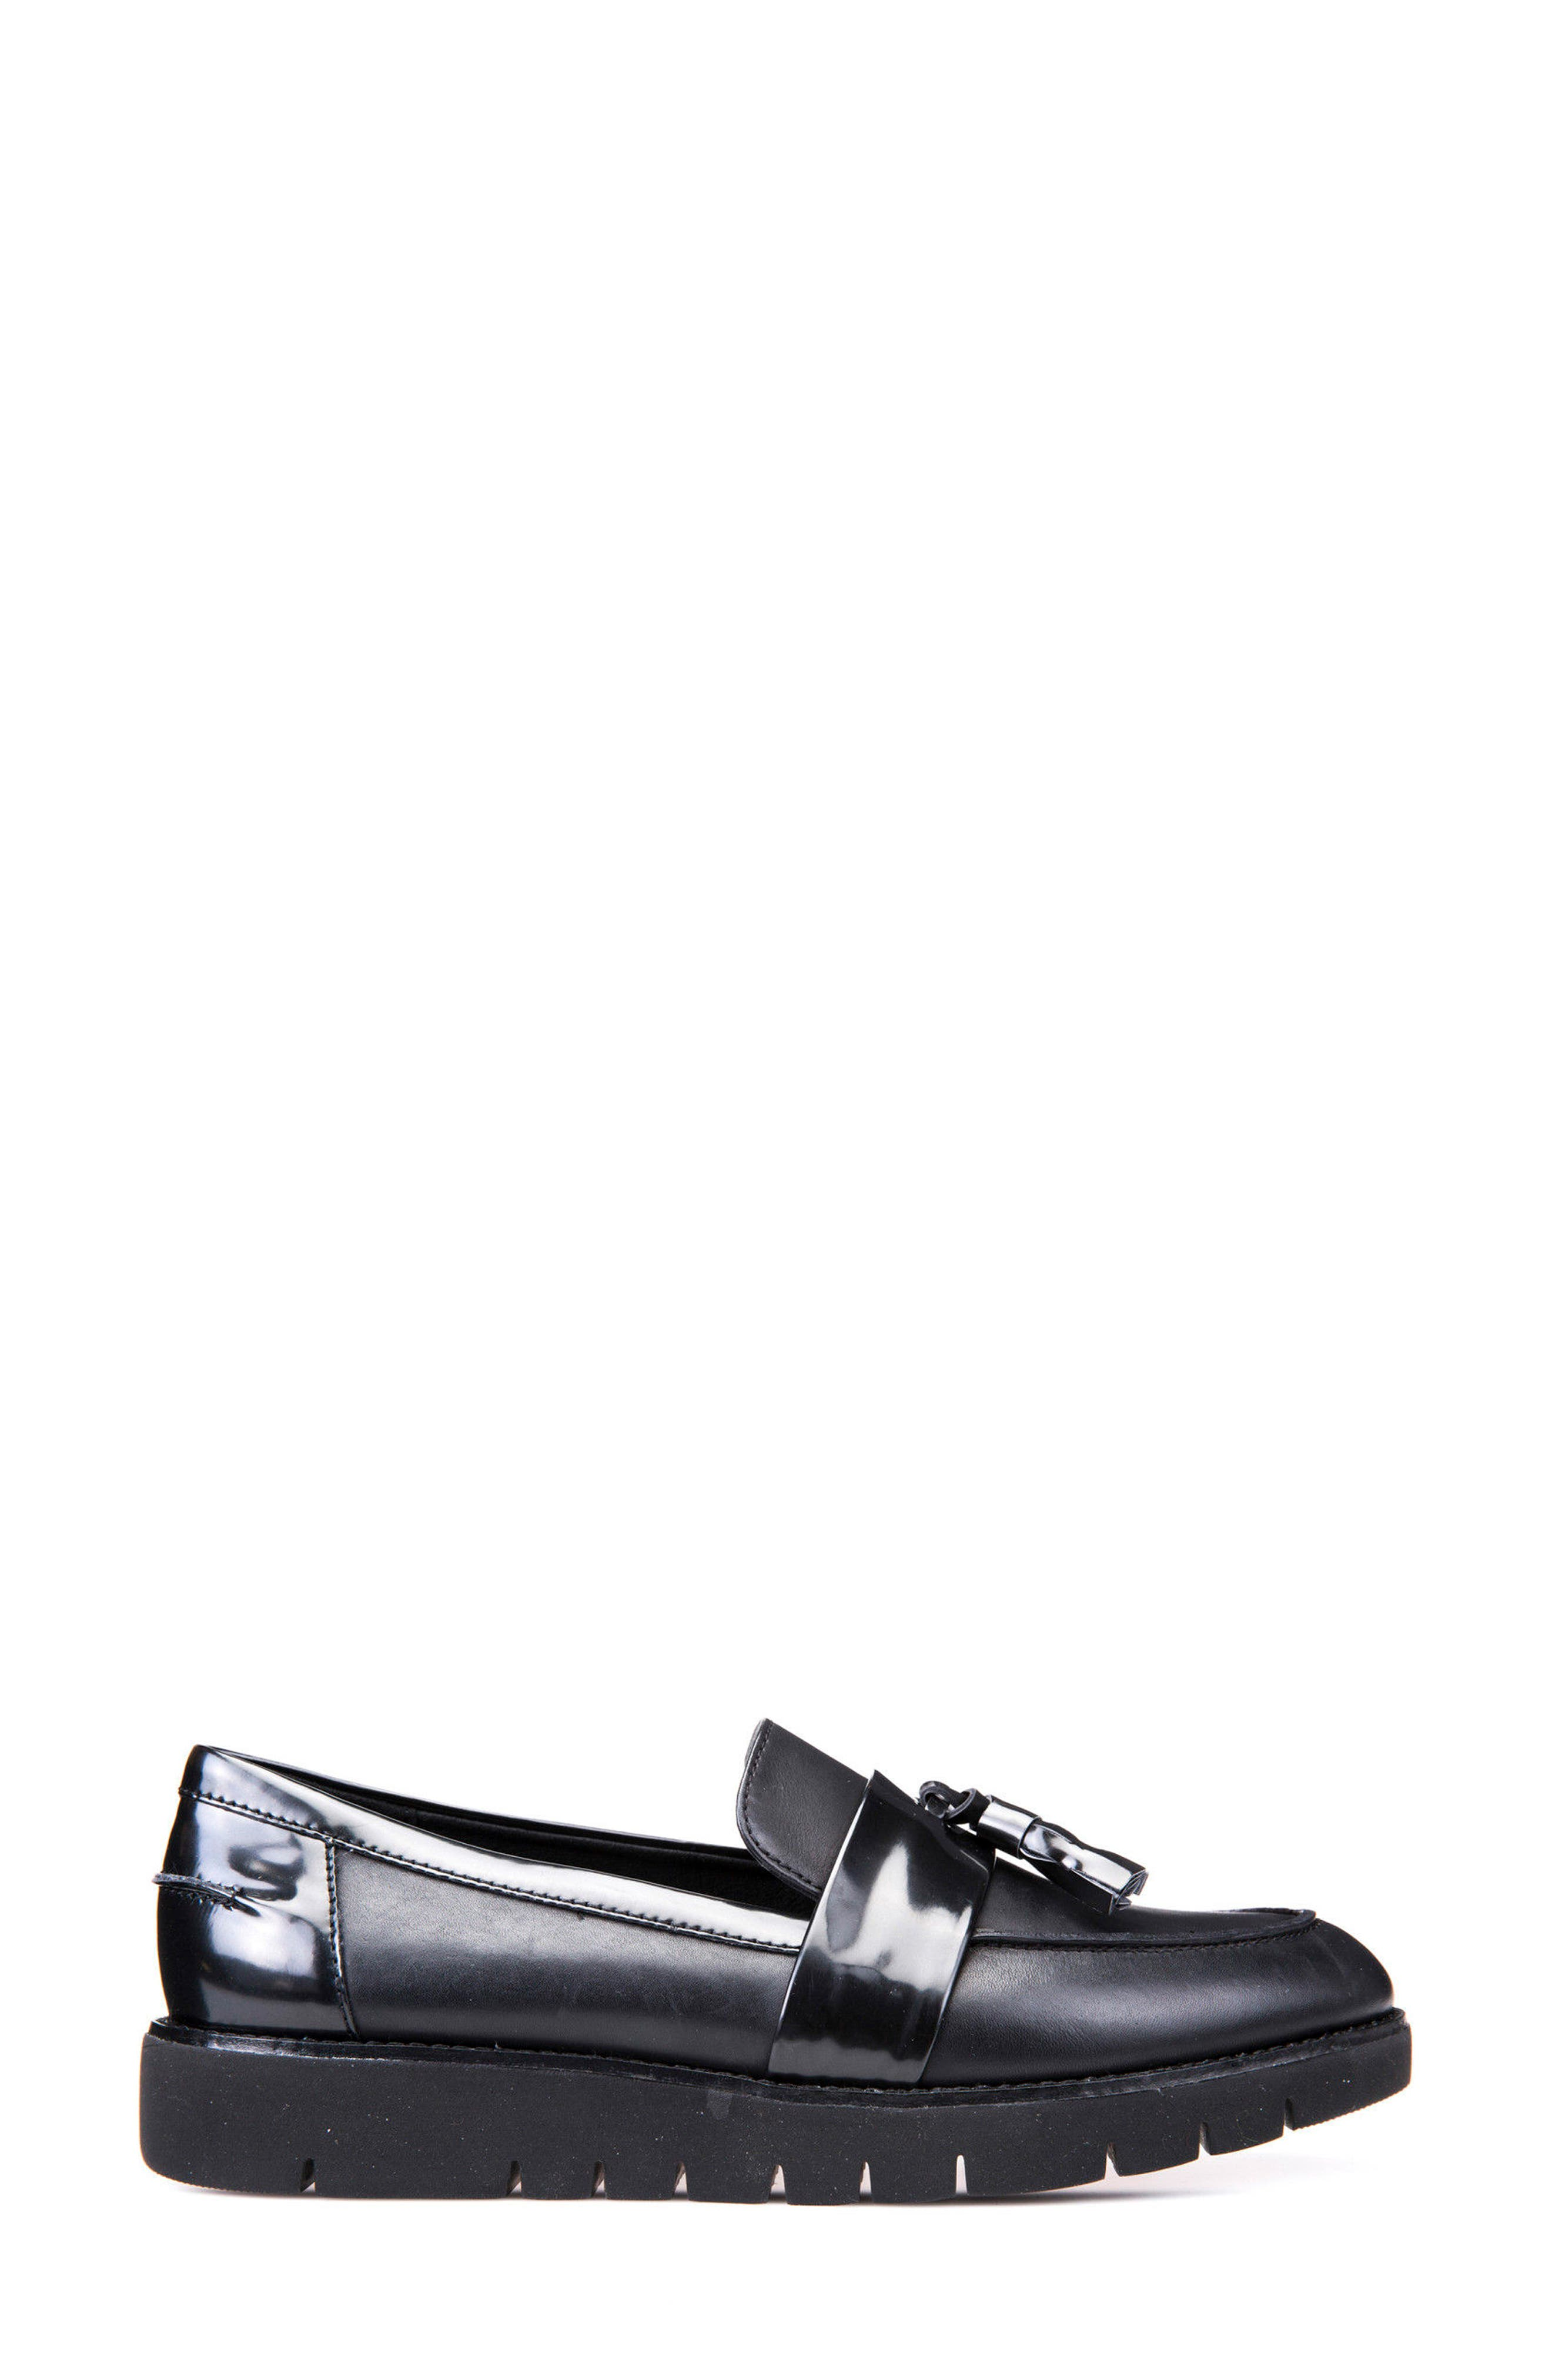 Blenda Tassel Loafer,                             Alternate thumbnail 3, color,                             001